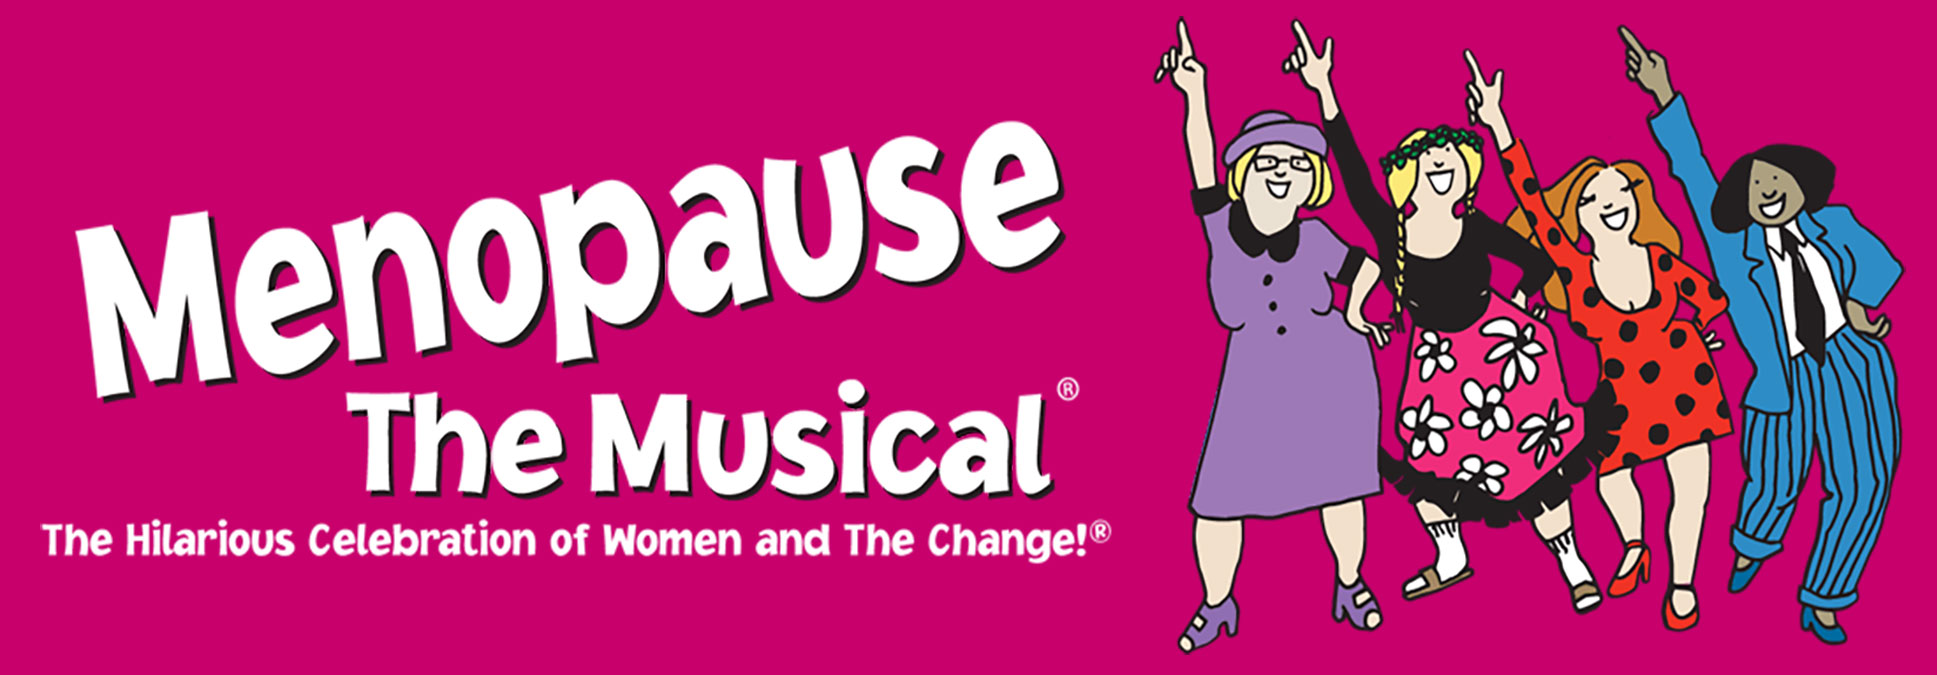 Menopause The Musical at the Marcus Performing Arts Center